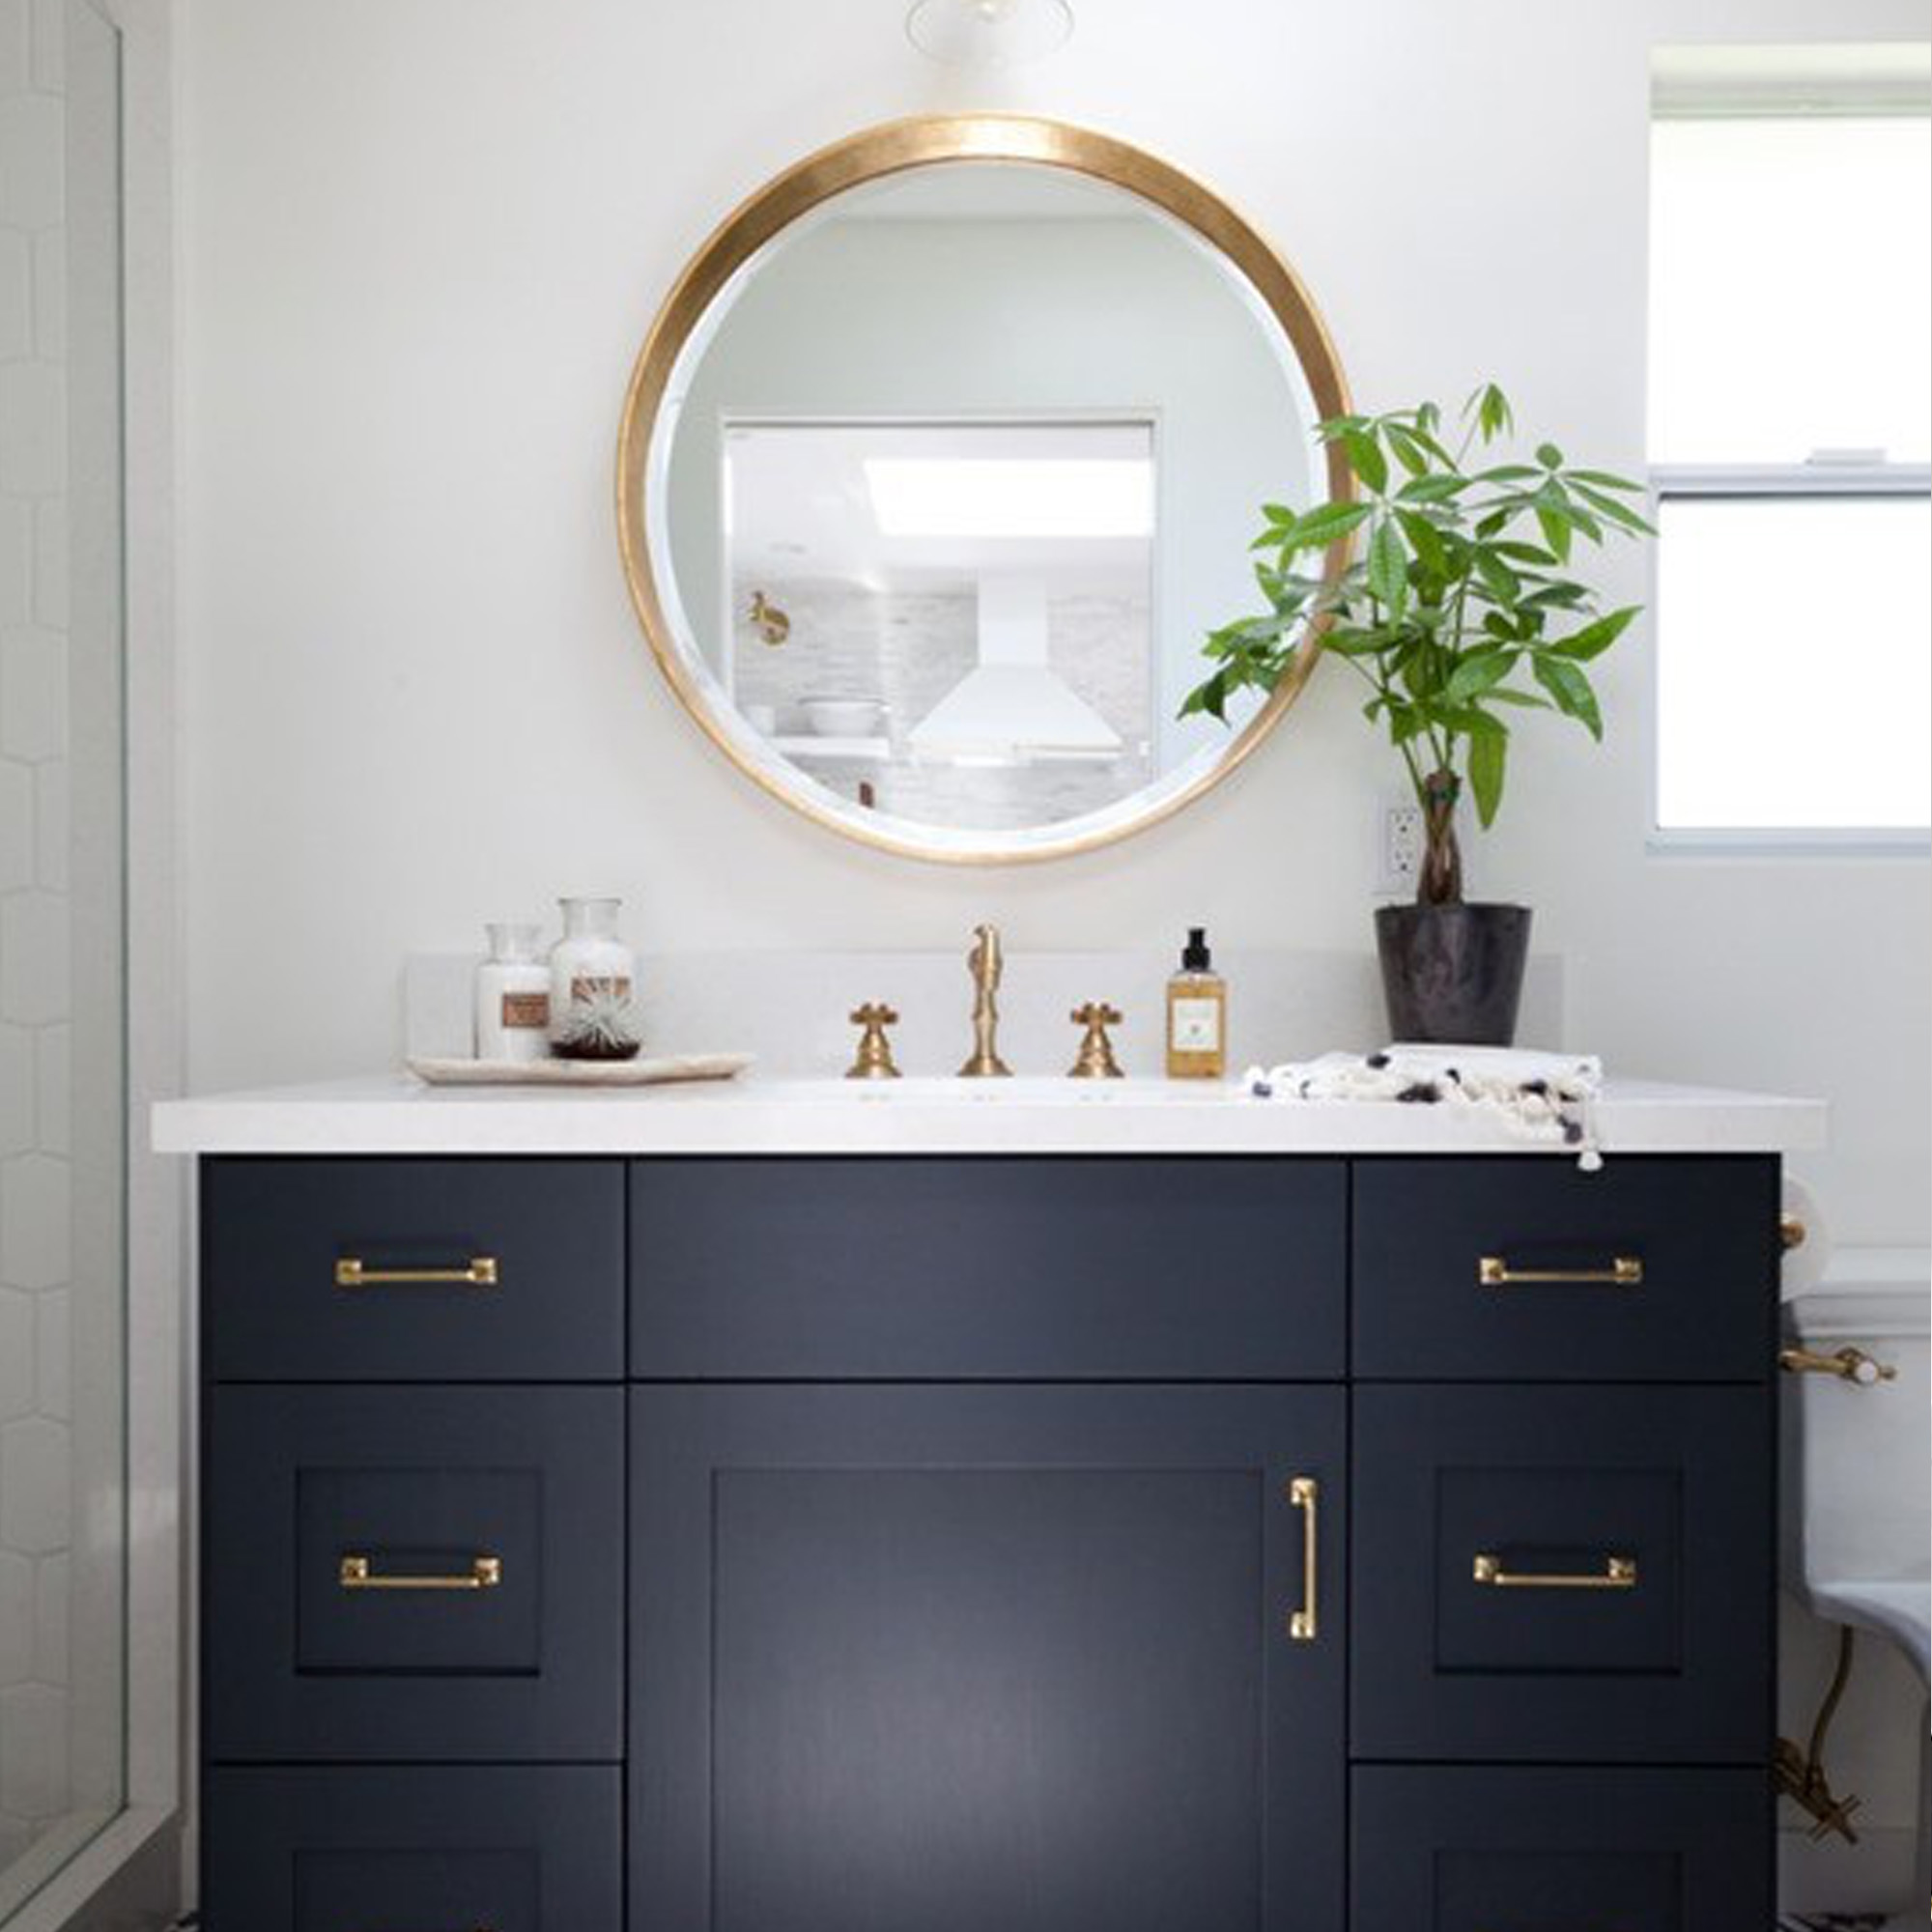 Making Bathroom Vanity Mirrors With Lights